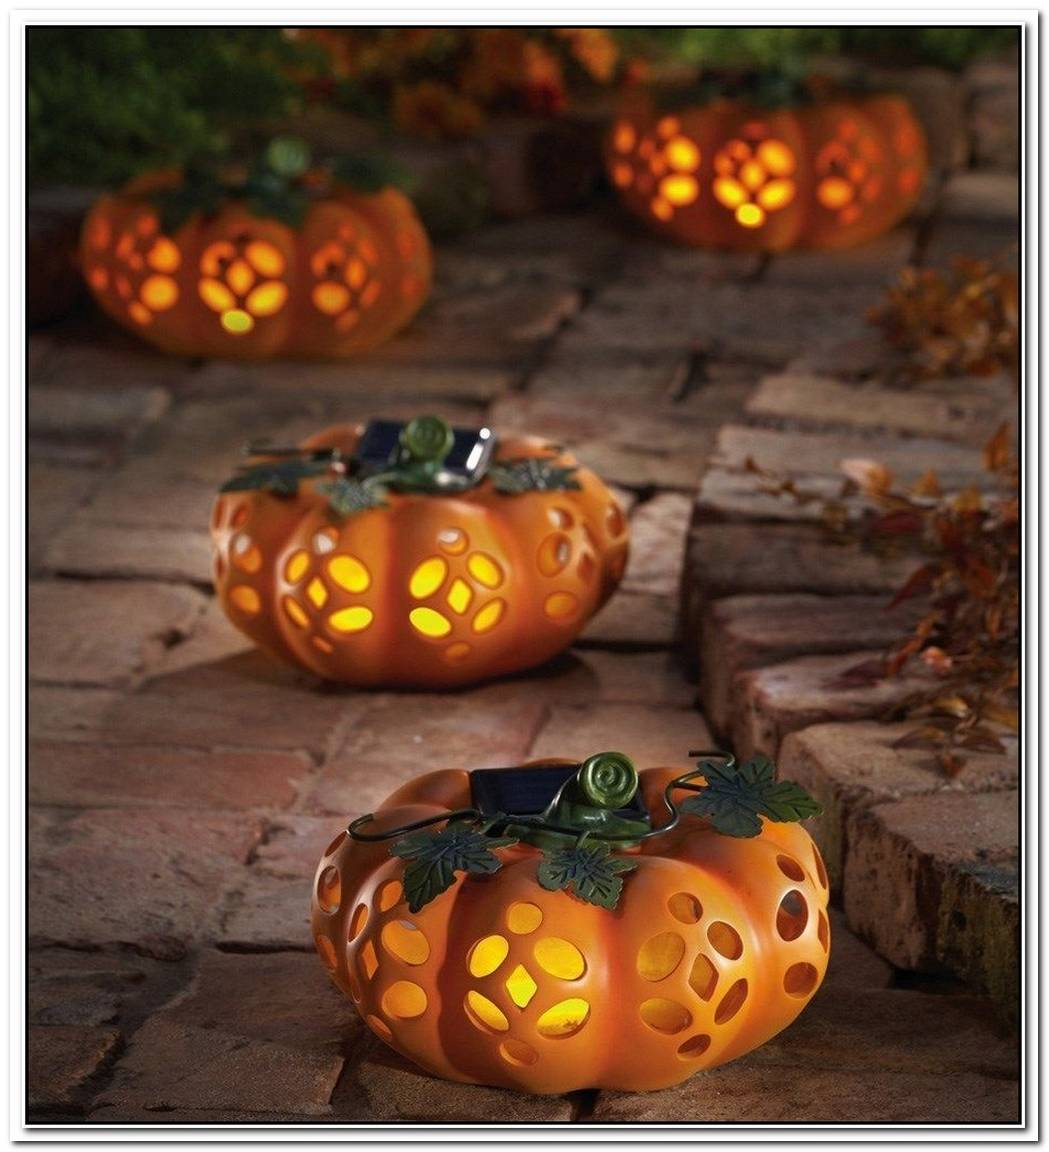 Beautiful Decorative Pumpkin With Lights